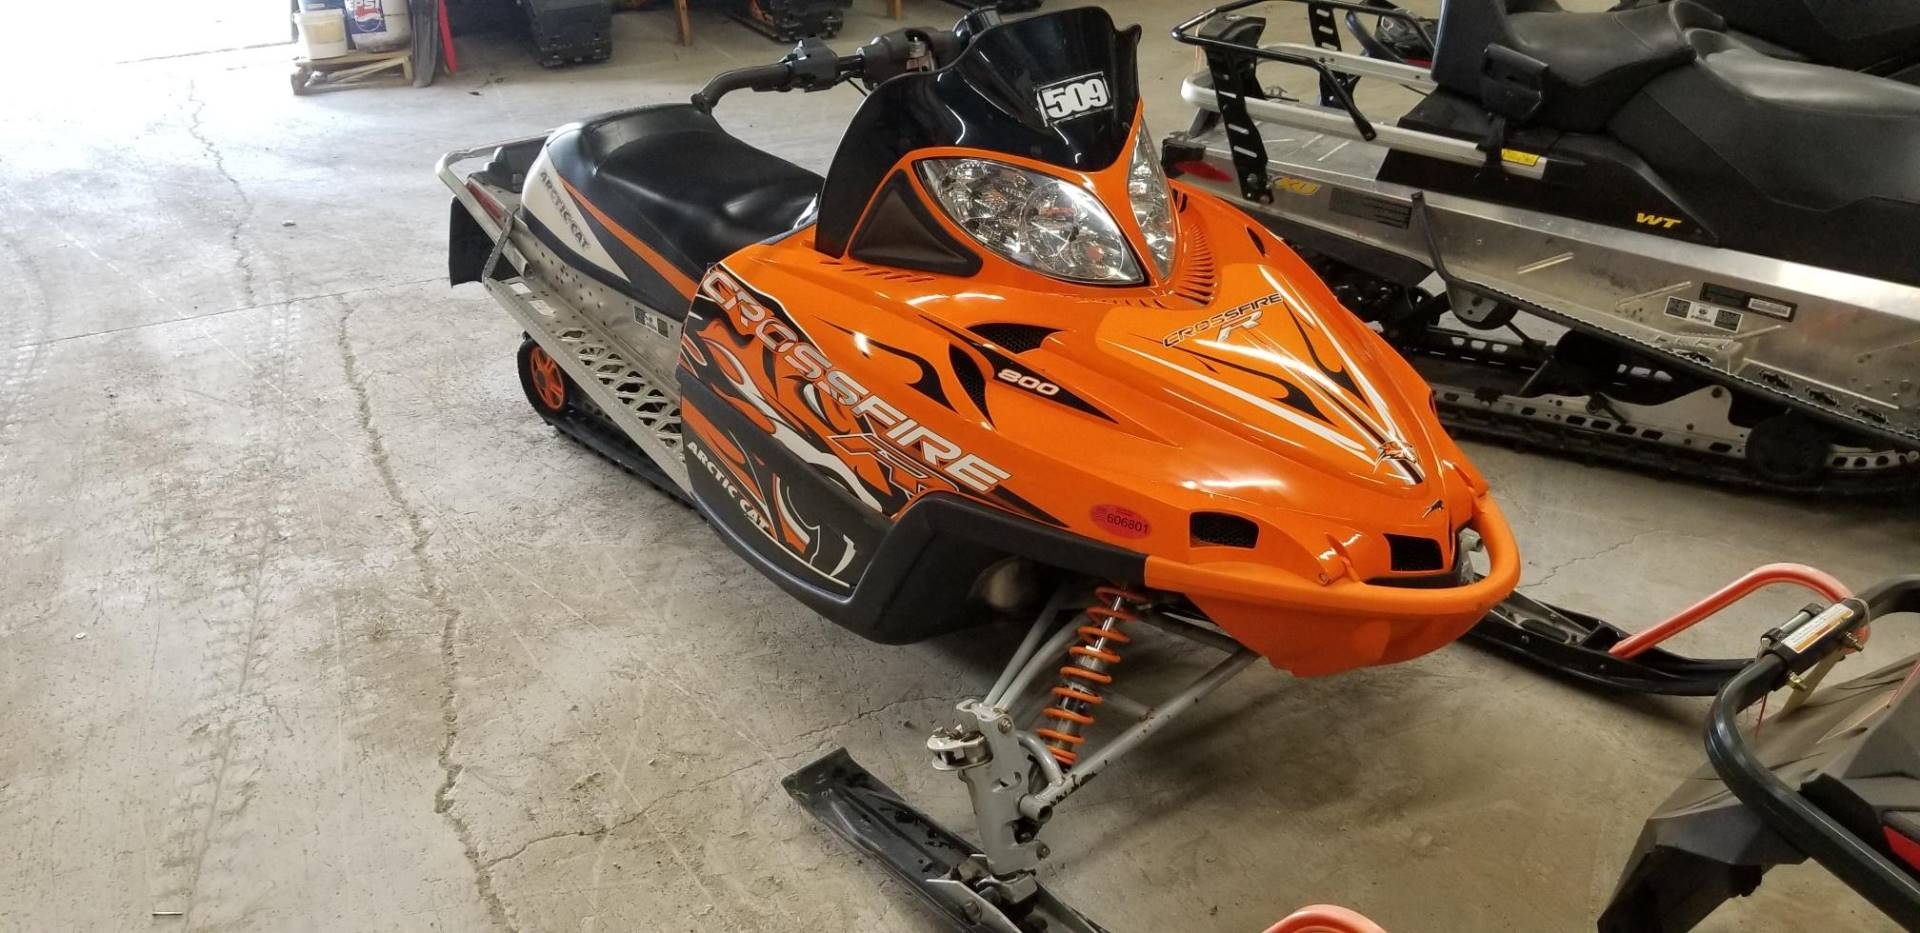 2009 Arctic Cat Crossfire R 8 in Presque Isle, Maine - Photo 1